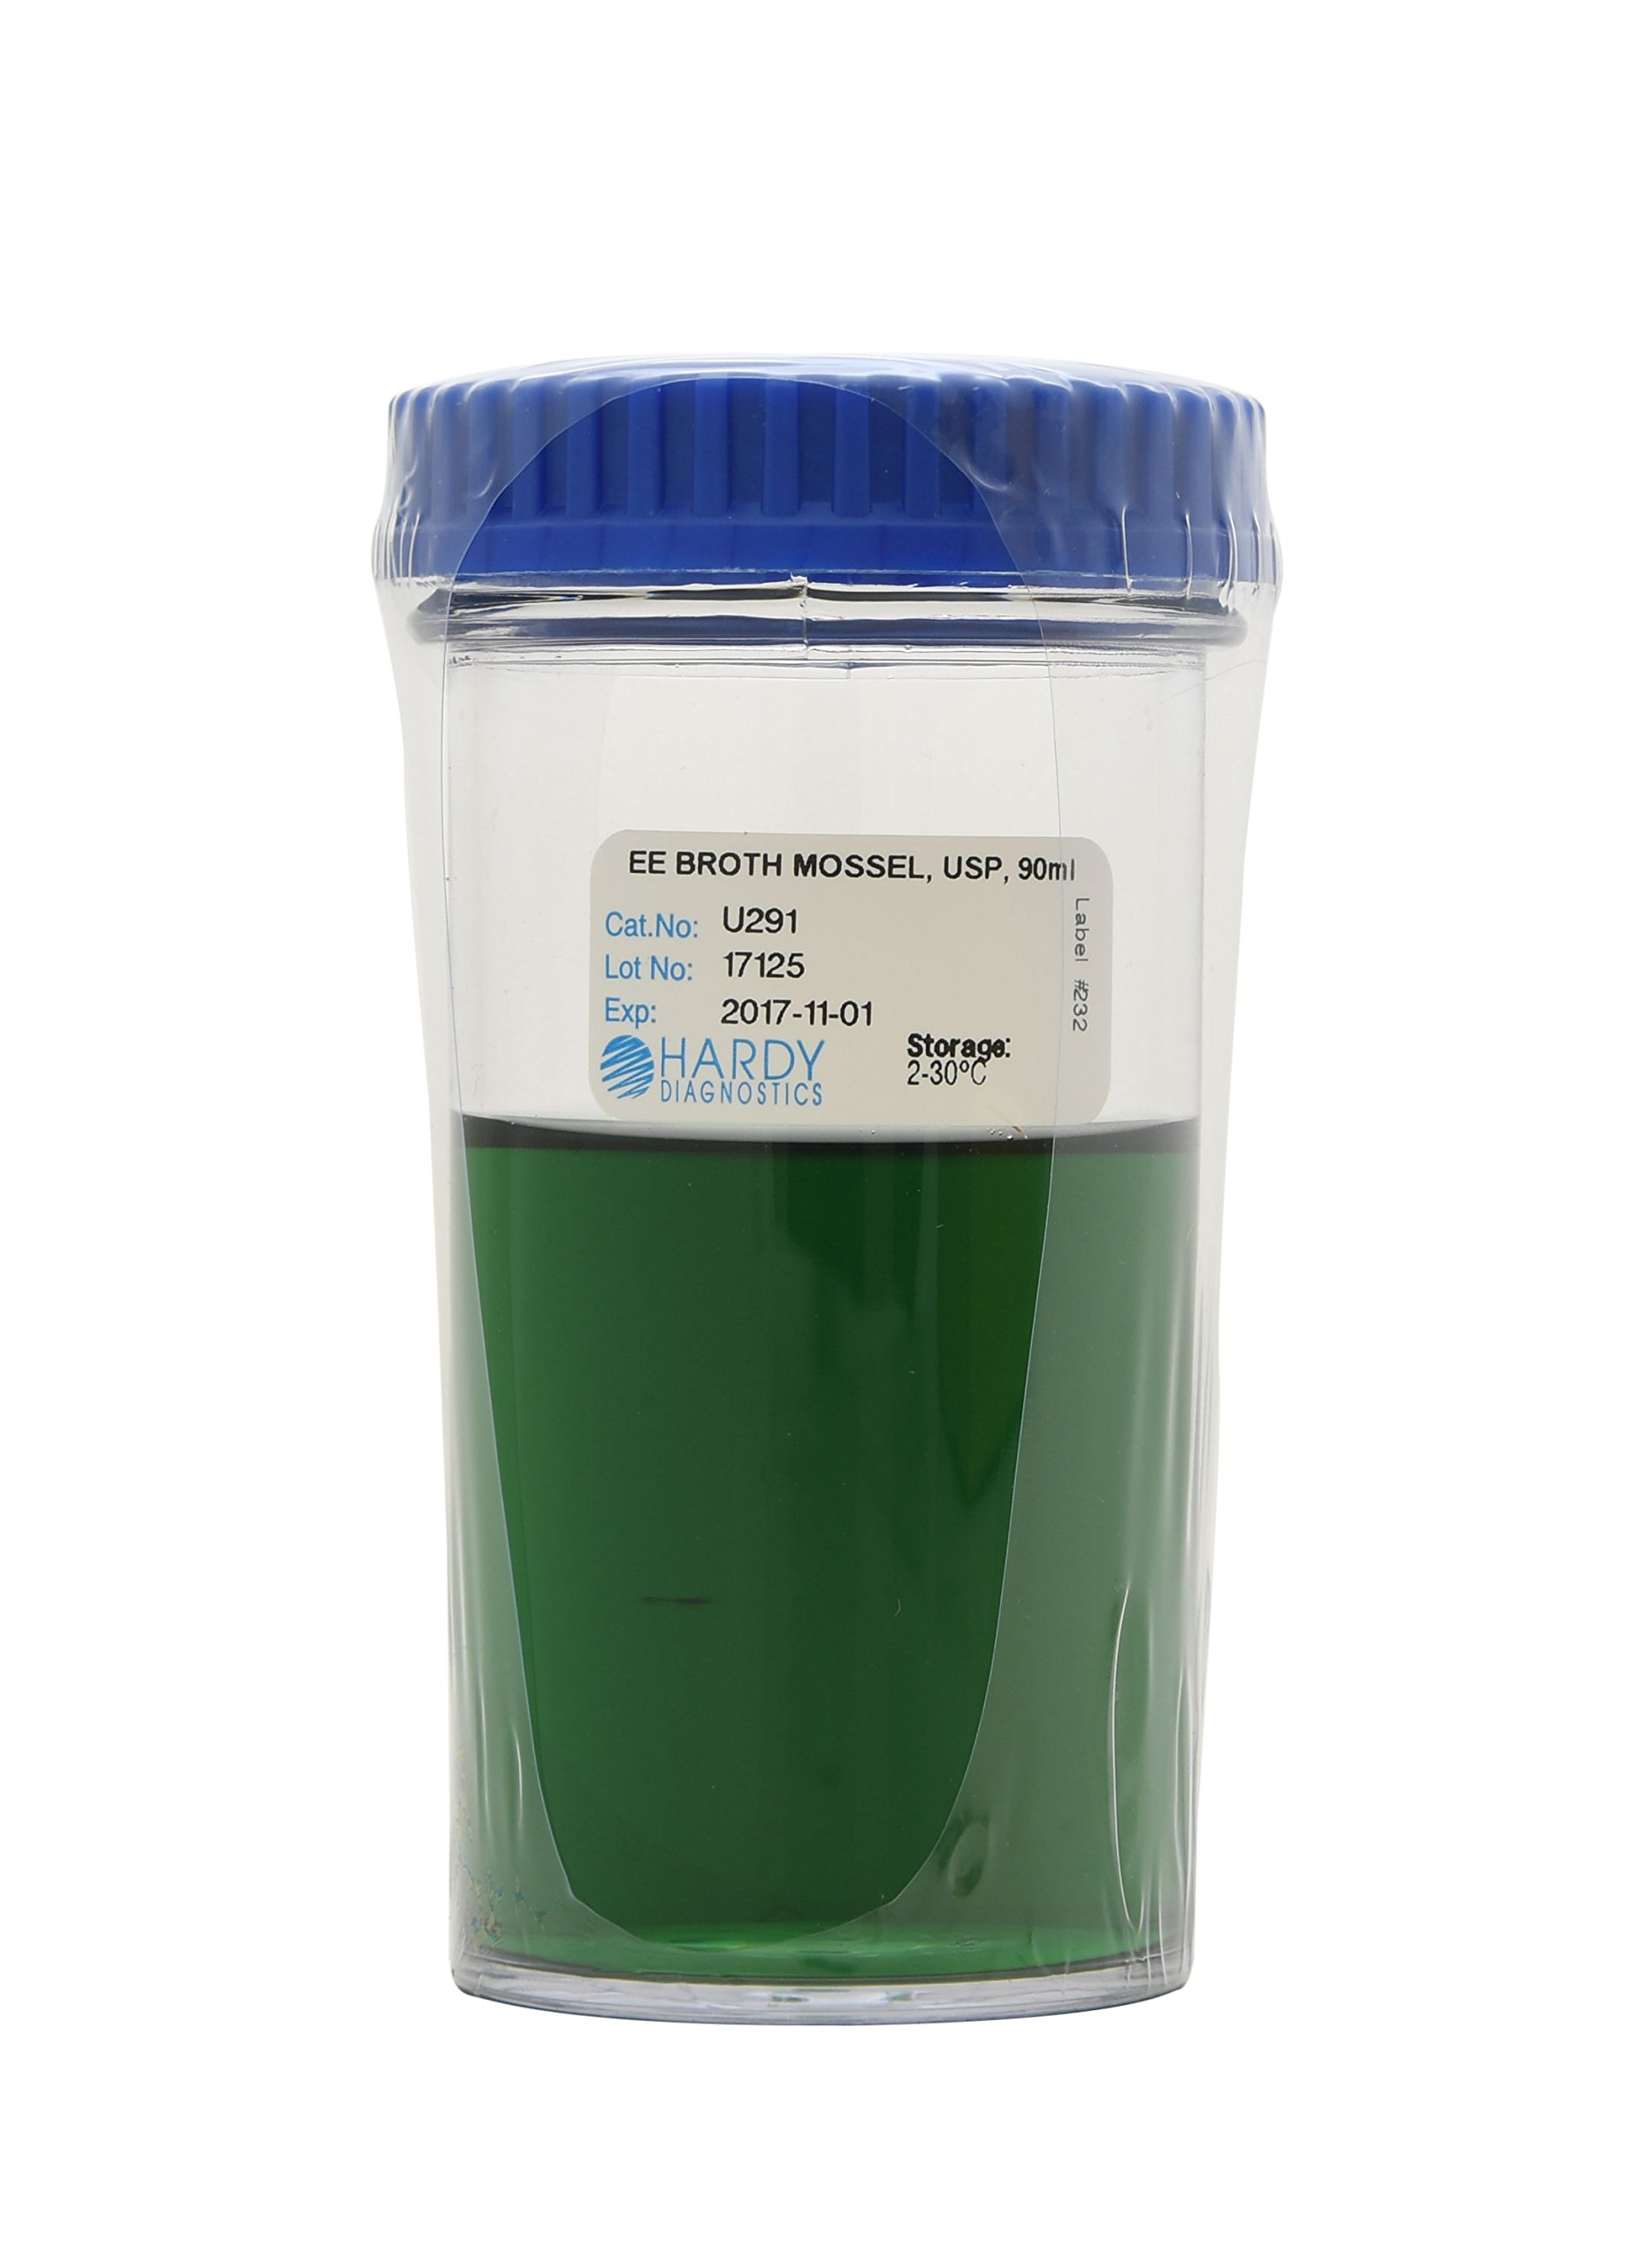 EE Broth Mossel, USP, for the Detection of Enteric Bacteria from Food Samples, 90 Milliliter Fill, 180 Milliliter Wide Mouth Jar, Order by the Package of 12, by Hardy Diagnostics by Hardy Diagnostics